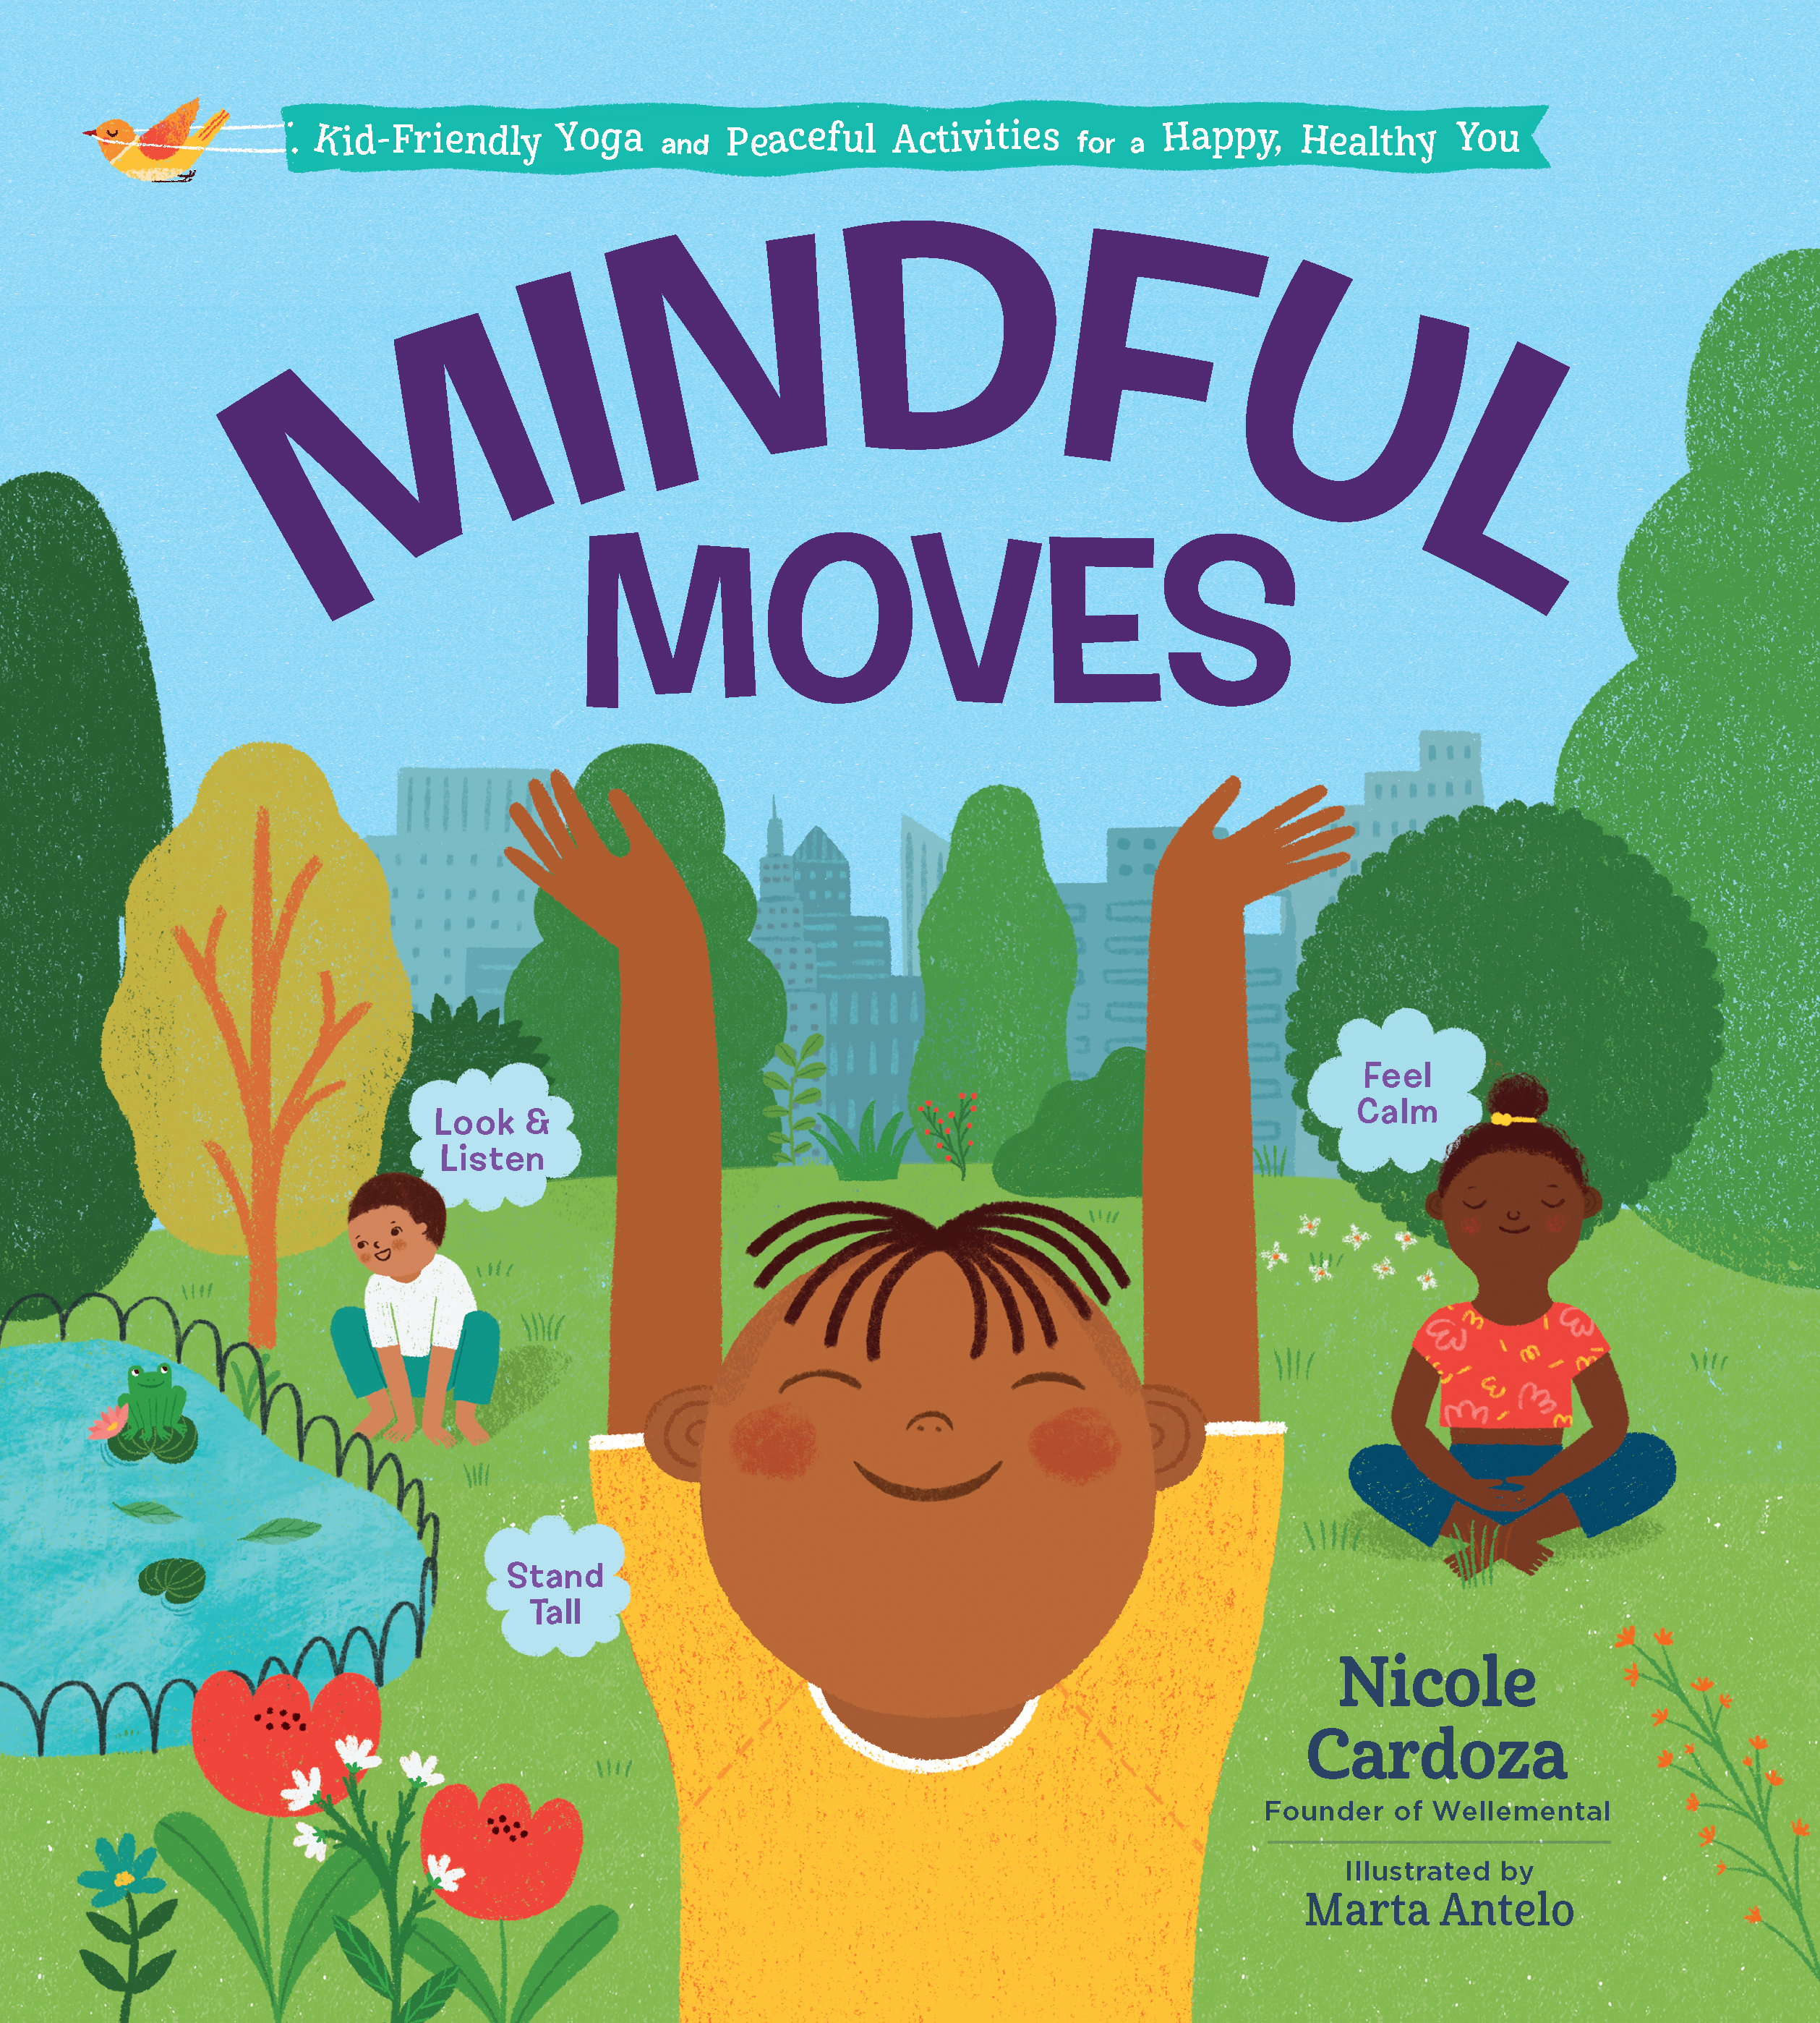 Mindful Moves Kid-Friendly Yoga and Peaceful Activities for a Happy, Healthy You - Nicole Cardoza